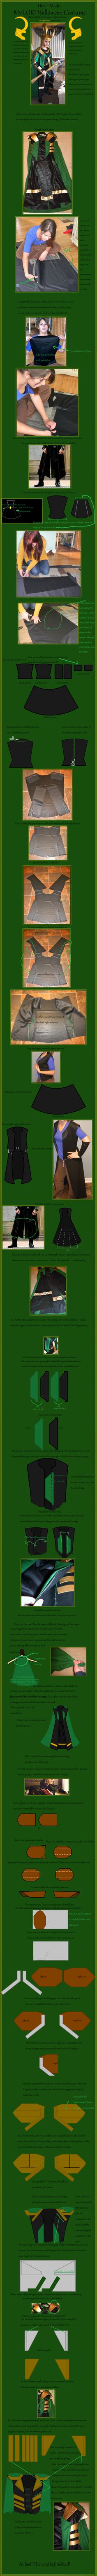 My LOKI Costume Tutorial: Coat/ Cape by The-Lighted-Soul.deviantart.com on @deviantART